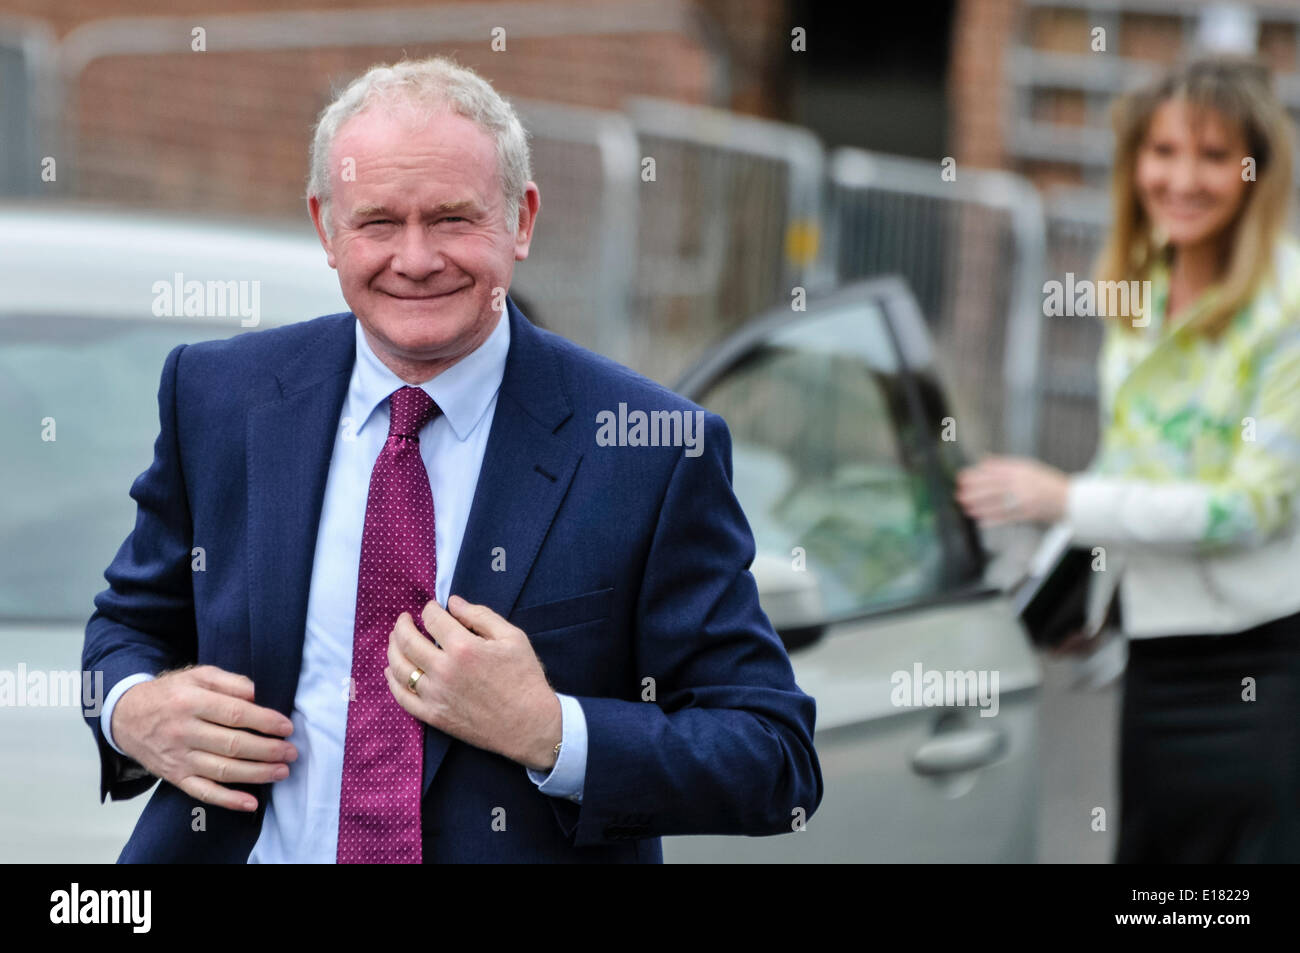 Belfast, Northern Ireland. 26 May 2014 - Sinn Fein Deputy First Minister Martin McGuinness gets out of a car with Martina Anderson MEP, Belfast Credit:  Stephen Barnes/Alamy Live News - Stock Image